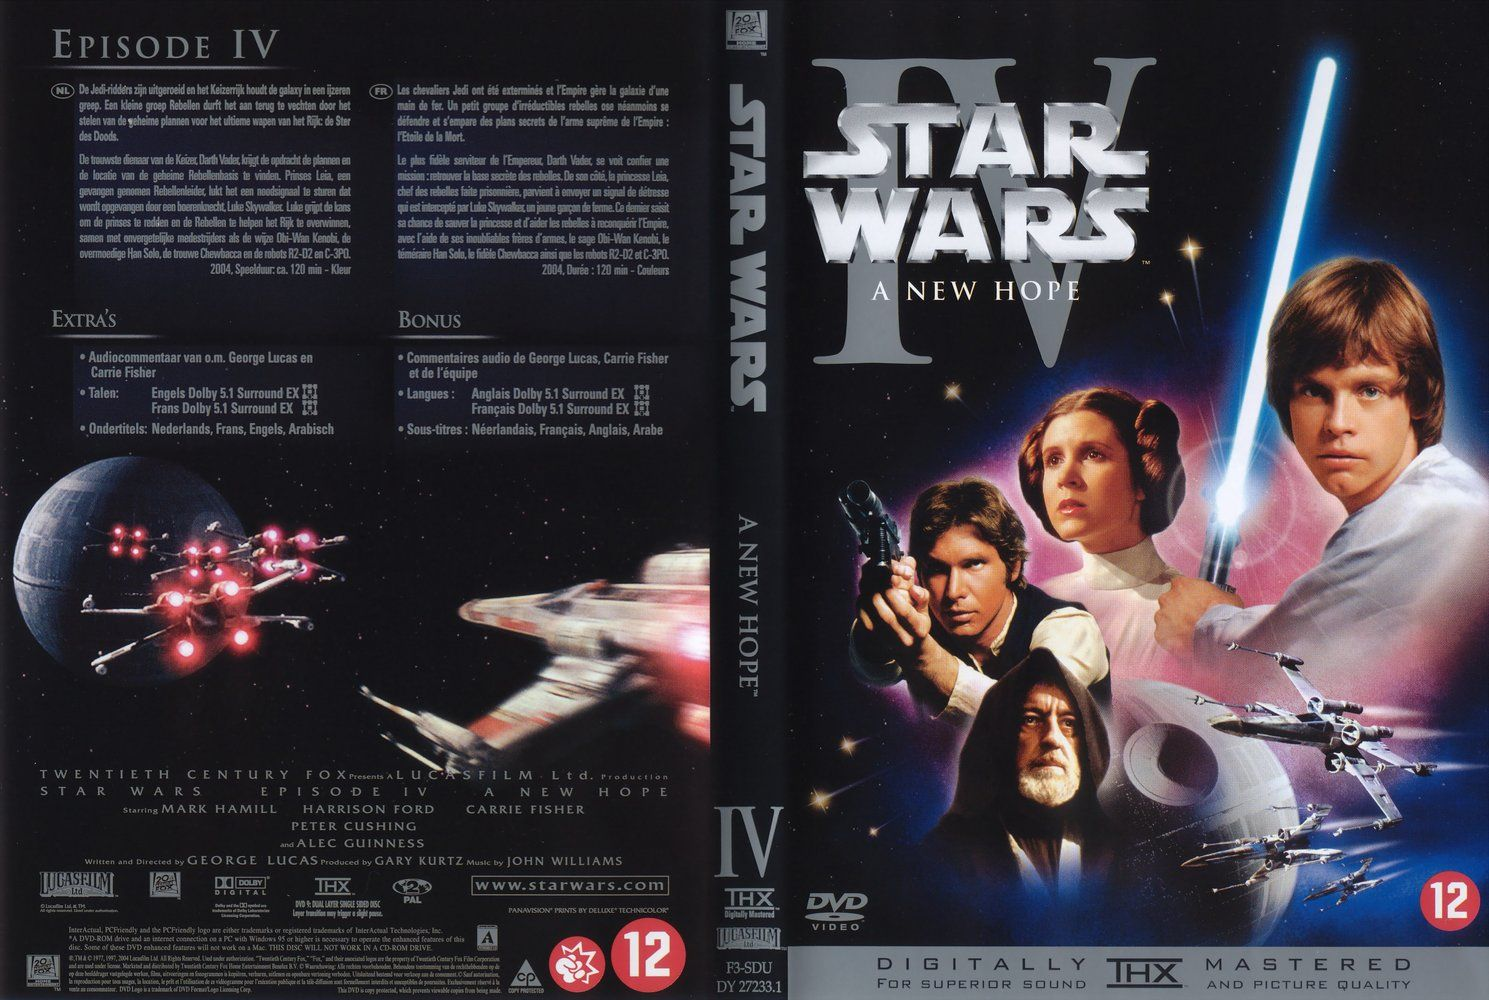 Star Wars Episode 4 A New Hope Dutch Front Misc Dvd Dvd Covers Cover Century Over 500 000 Album Art Covers For Free